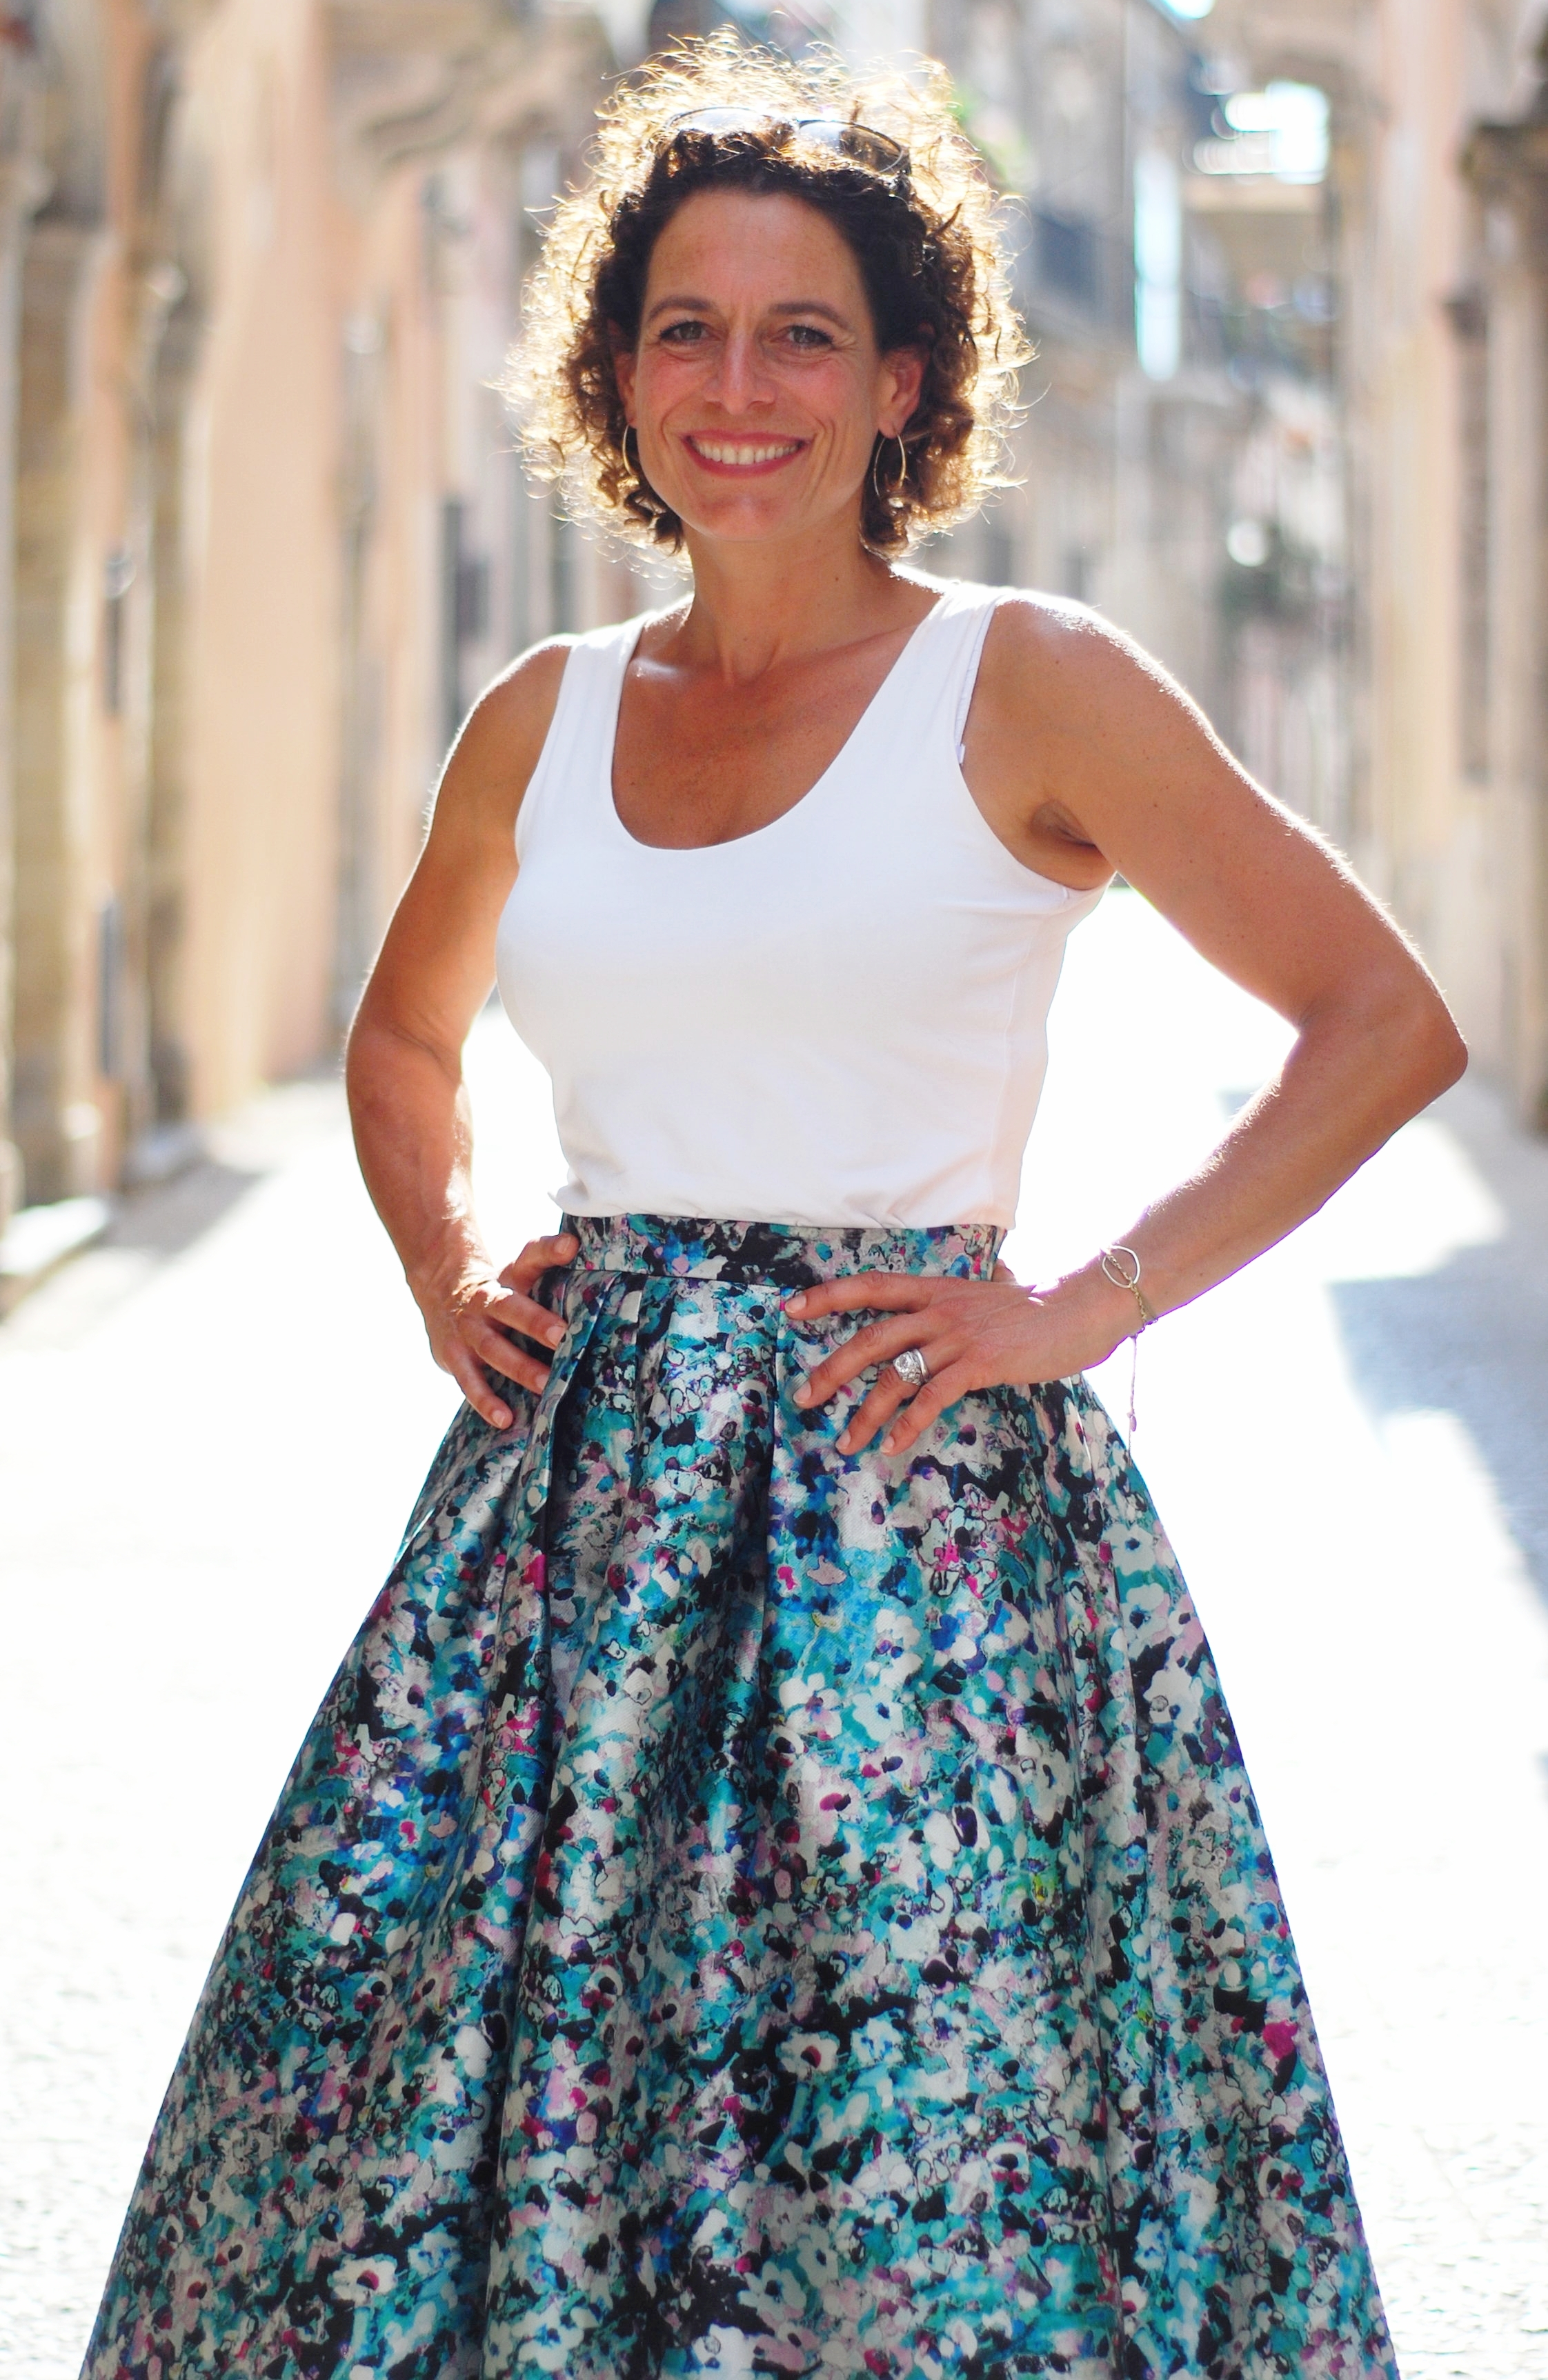 Alex Polizzi akaThe Hotel Inspector - featured in our Winter 2016-2017 issueHONESTY IS THE BEST POLICY